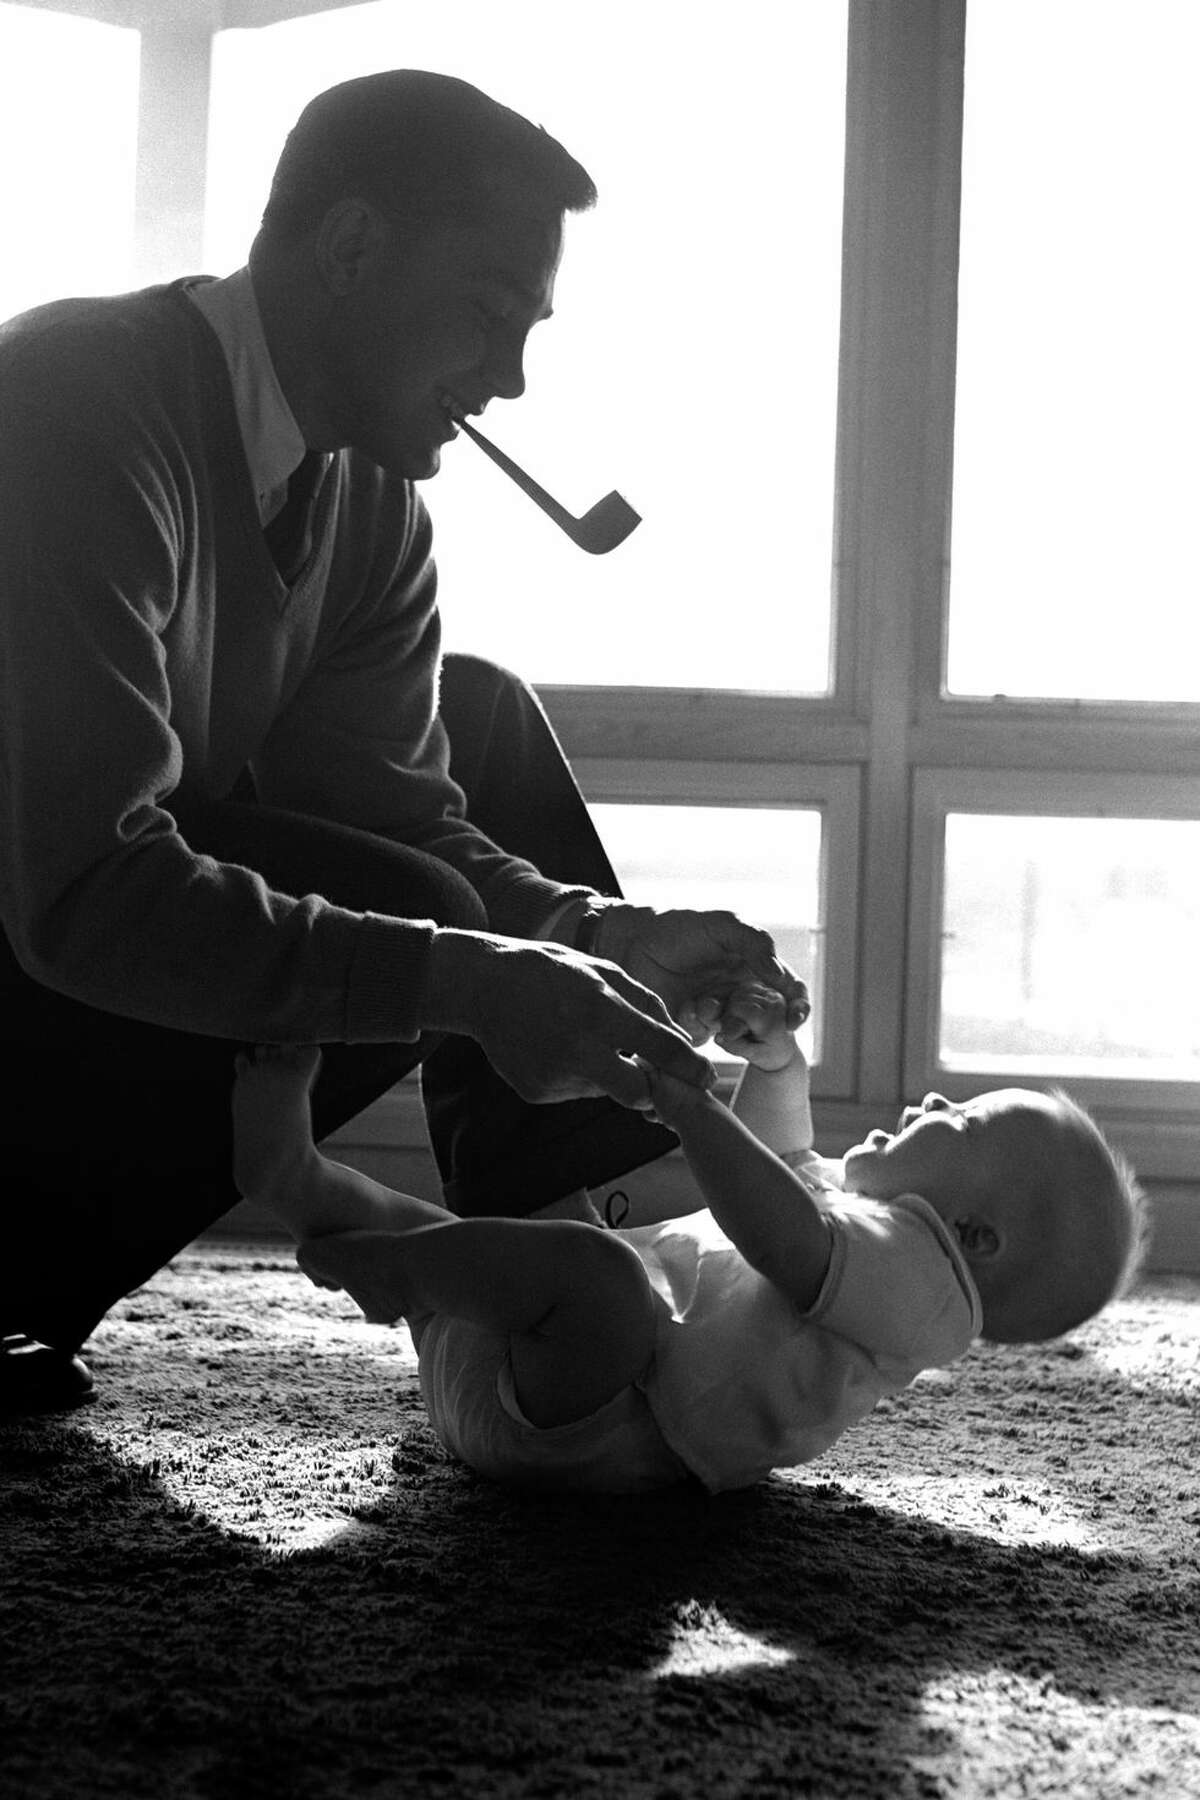 3) Smoking Was Emulated and Encouraged Cigarettes hung from adult lips everywhere-in stores, on planes, on television, and at the kitchen table. Aside from being constantly exposed to secondhand smoke, it was modeled as healthy. Cigarette ads featured babies and parents together. Mom and Dad thought it was adorable to pose toddlers with unlit cigarettes or pipes in cutesy photos. Teen smoking was sometimes considered a sign of maturity.Kids were routinely sent to the store to buy cigarettes for their parents, and no questions were asked.